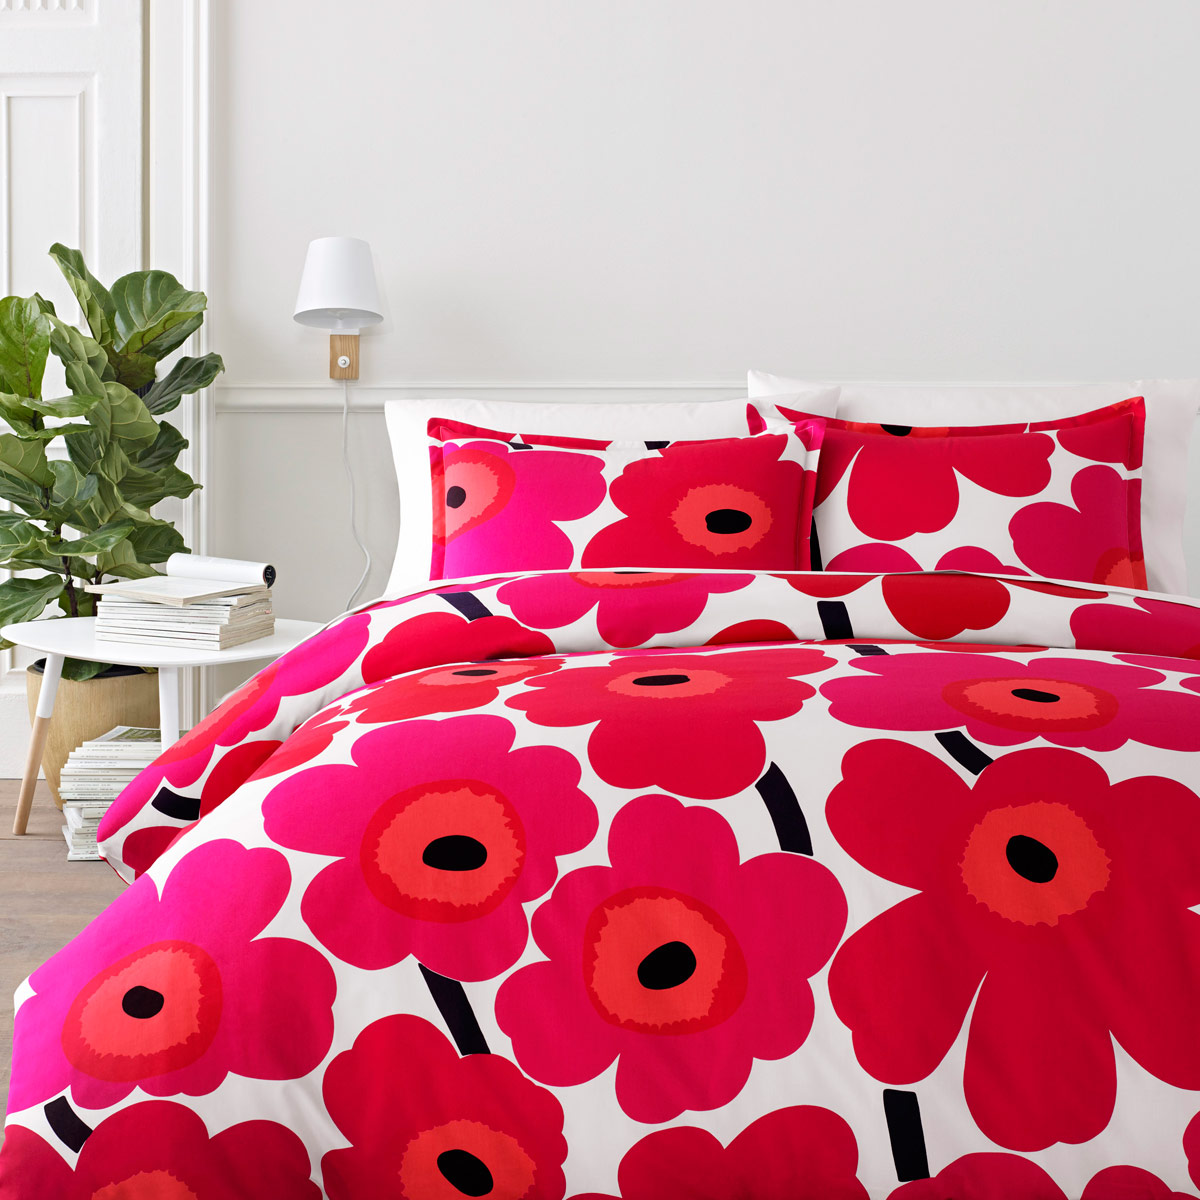 super uk size and cover duvets black quilt marvelous pretty image comforter red amazon inspirations bedding queen luxury blue dark king pink mens inventiveness plain set perfect beige white sets co grey full of sale double top covers printed duvet